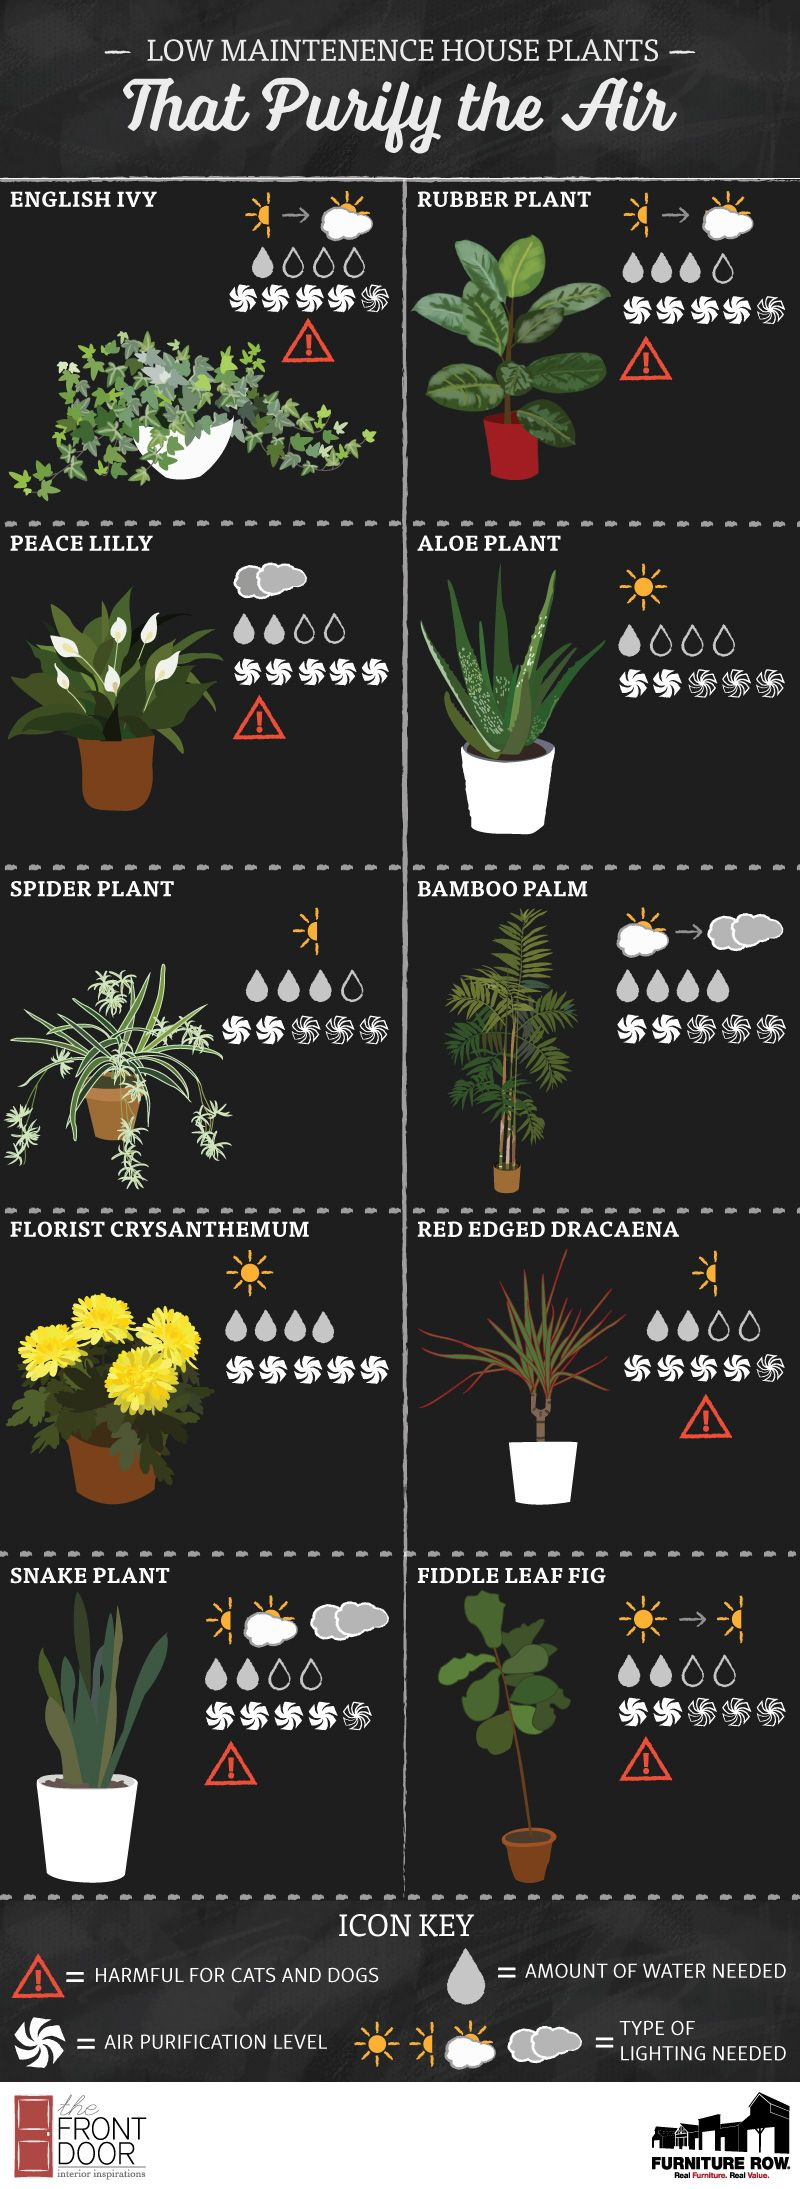 Low Maintenance House Plants That Purify The Air The Front Door Plants Plant Guide House Plants